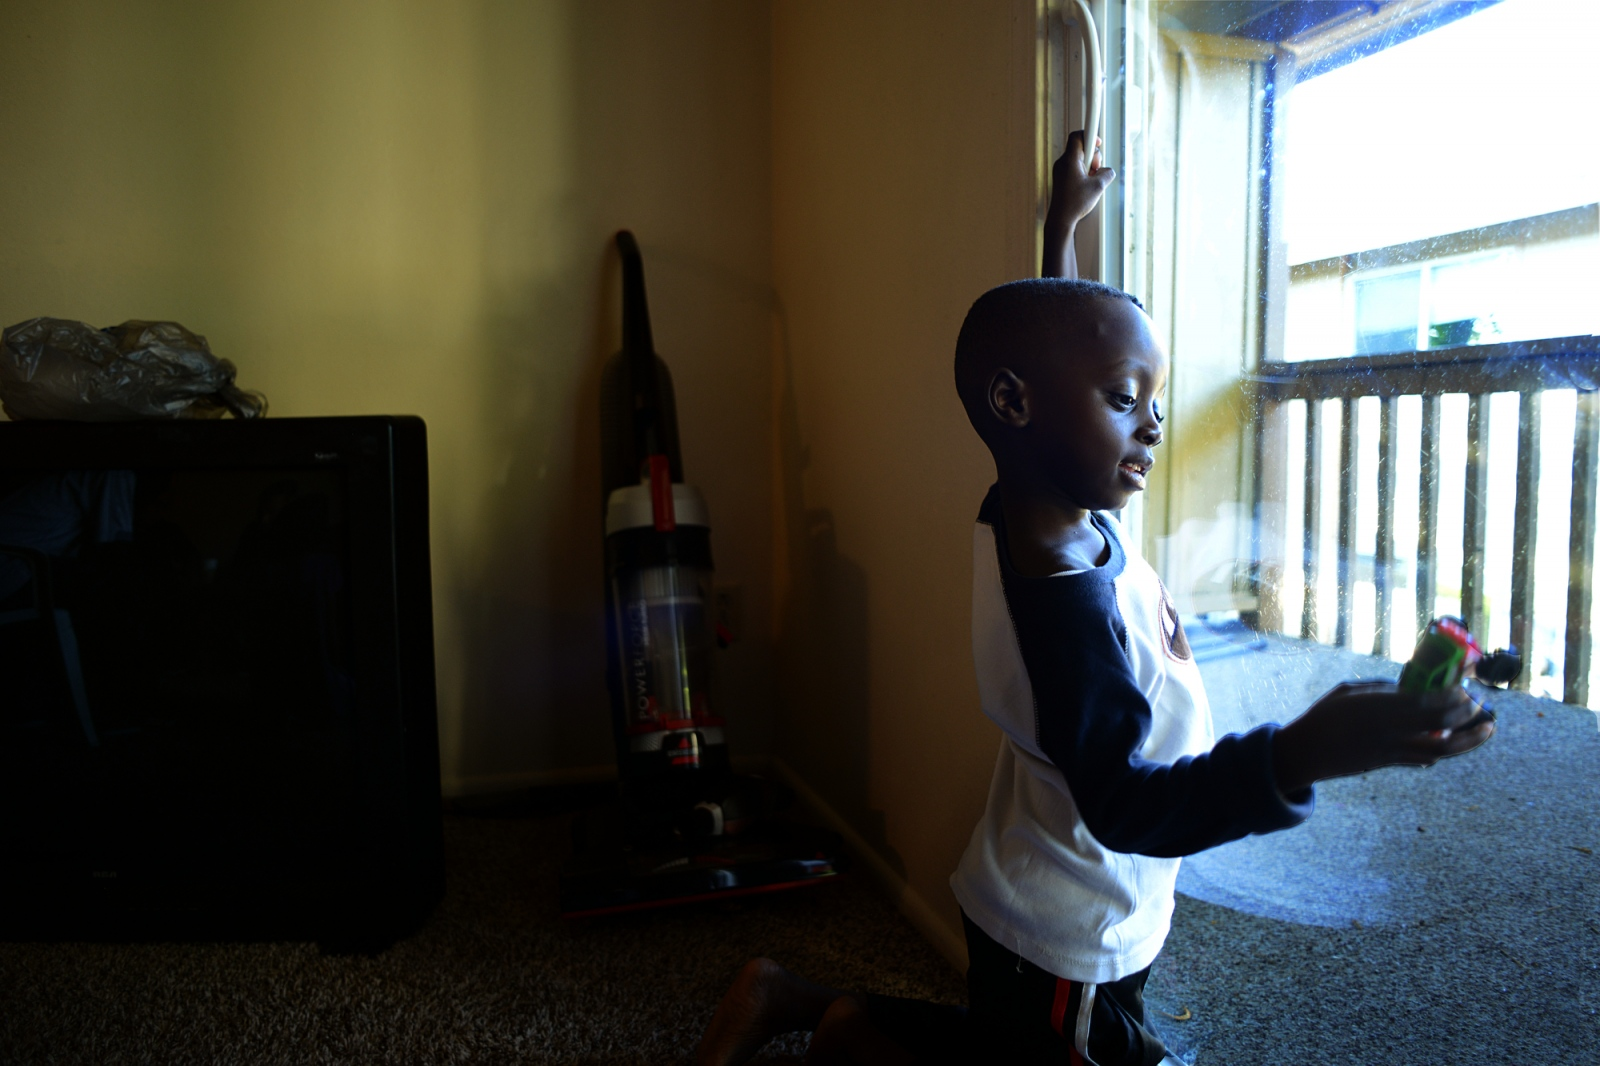 Mudather Geddo, 5, plays with a toy truck at his new home in Twin Falls, Idaho, after arriving from Cairo.